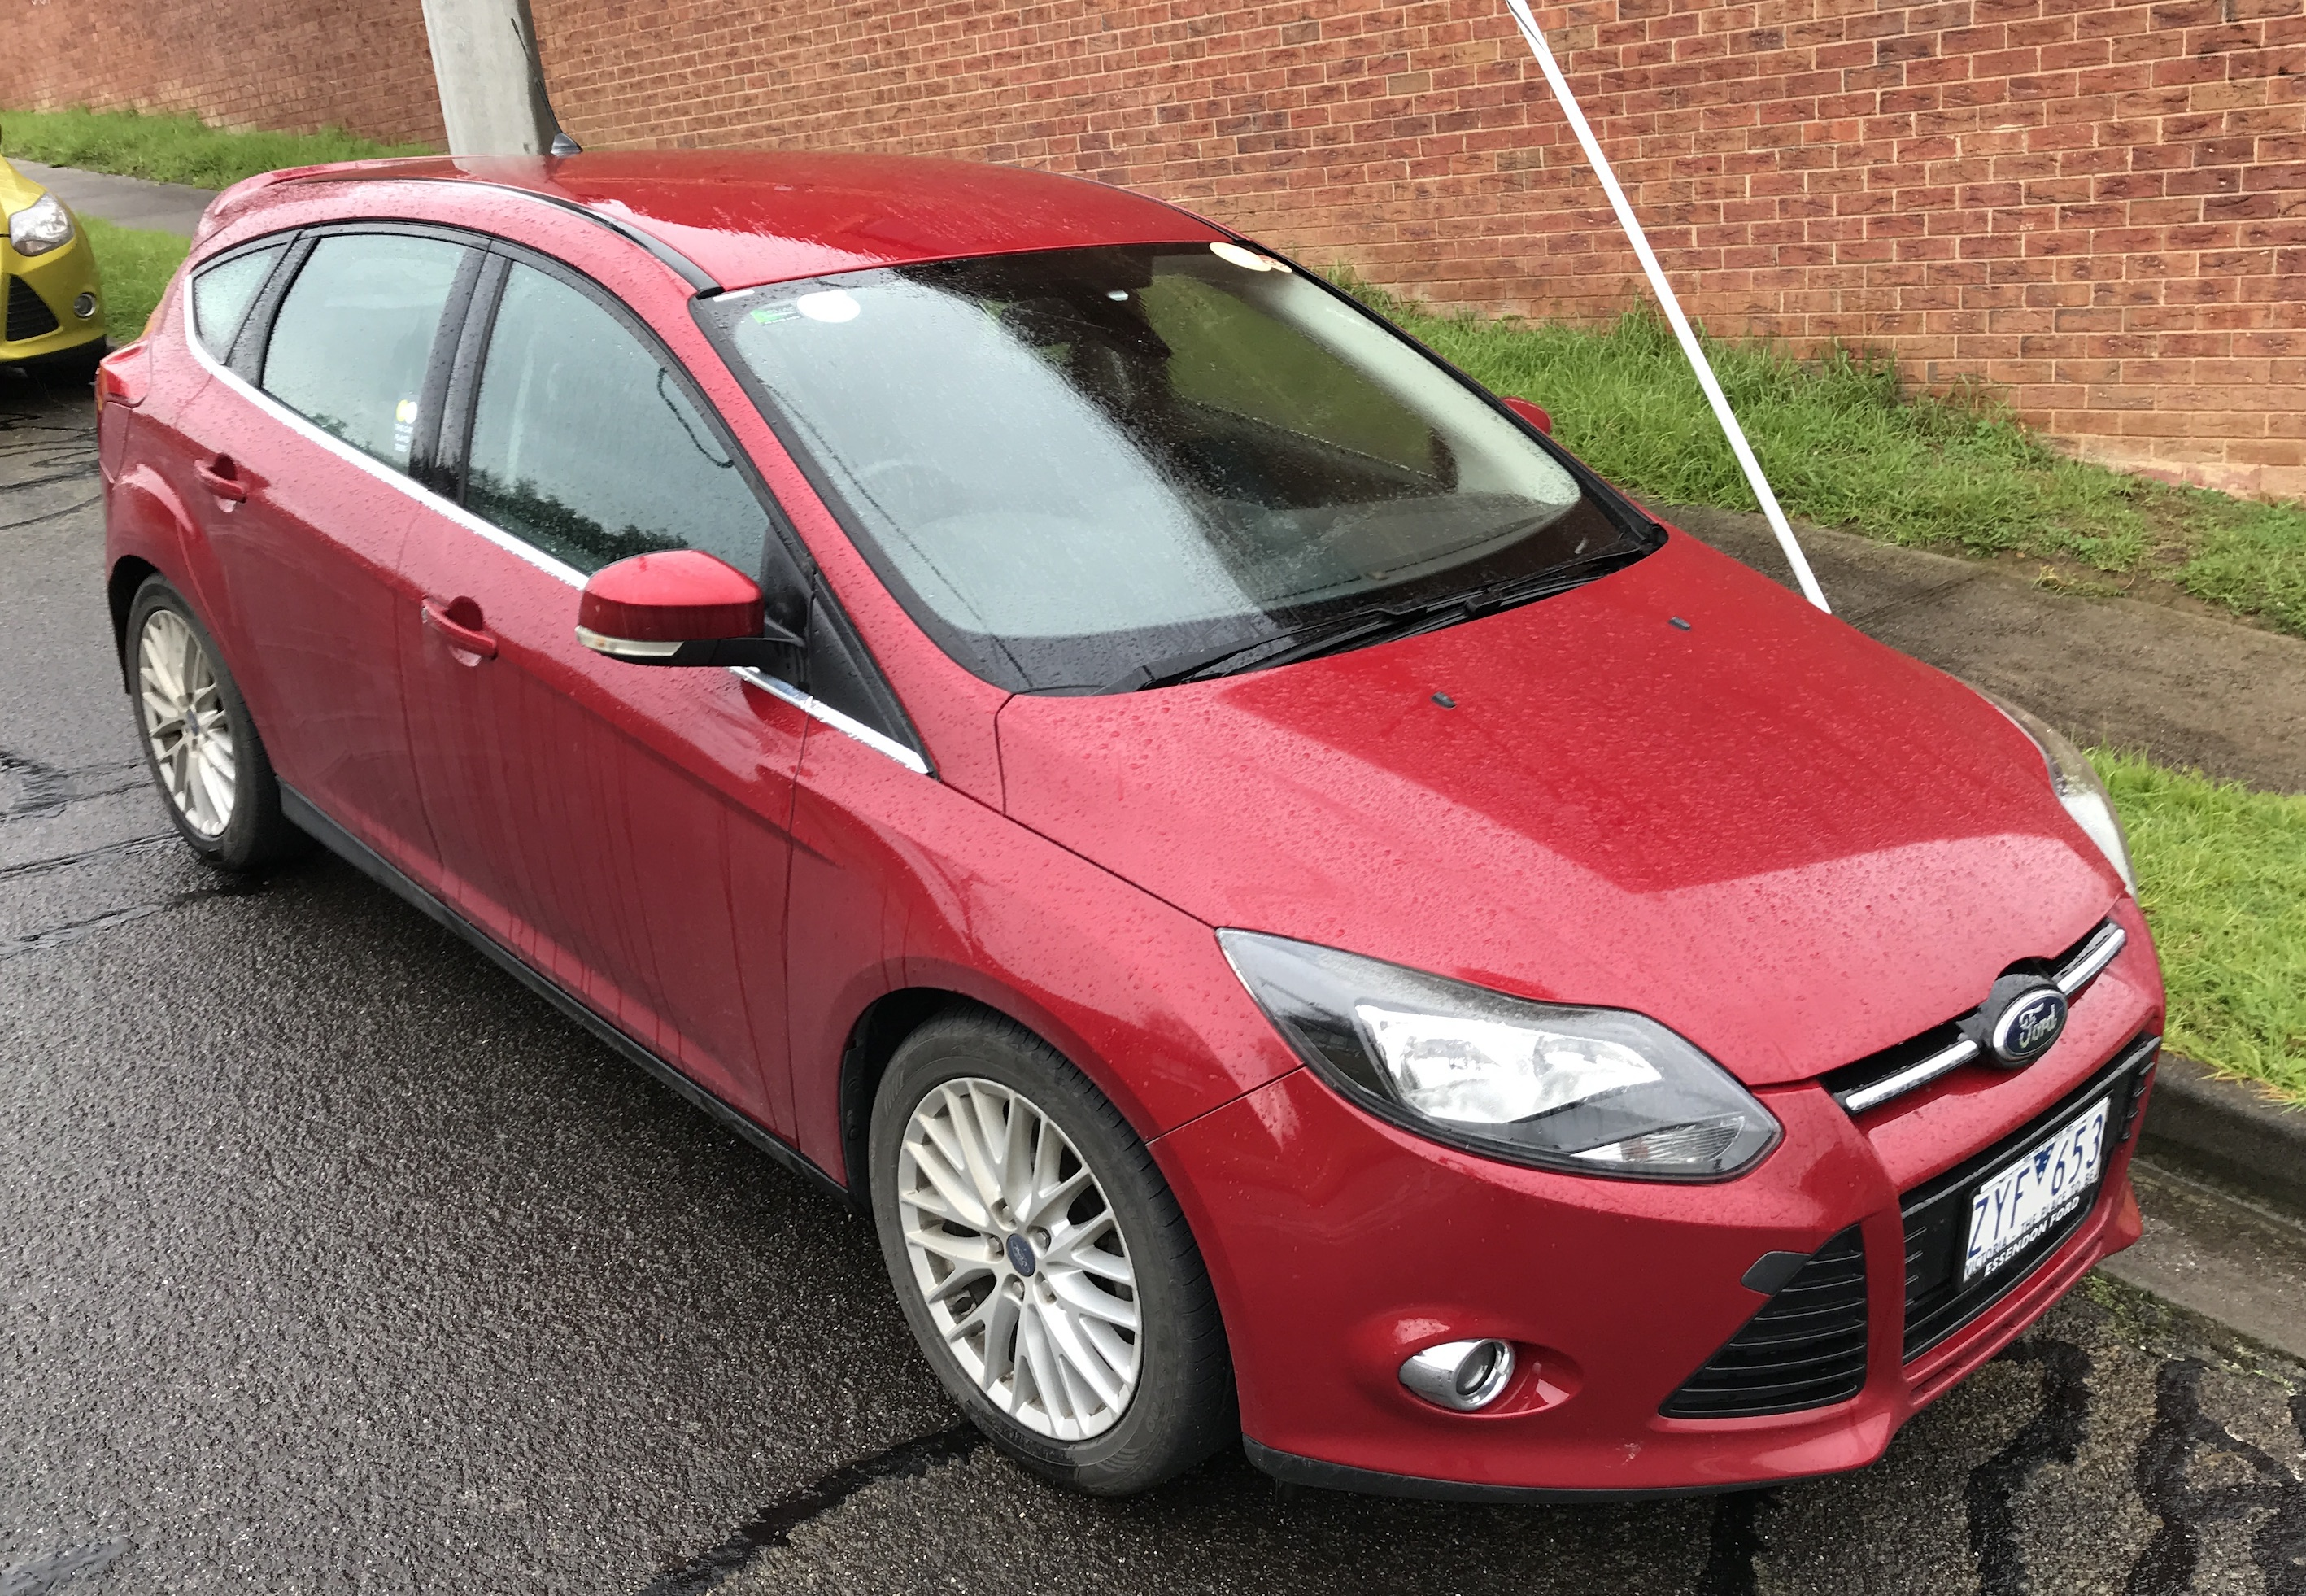 Picture of Fulton's 2012 Ford Focus